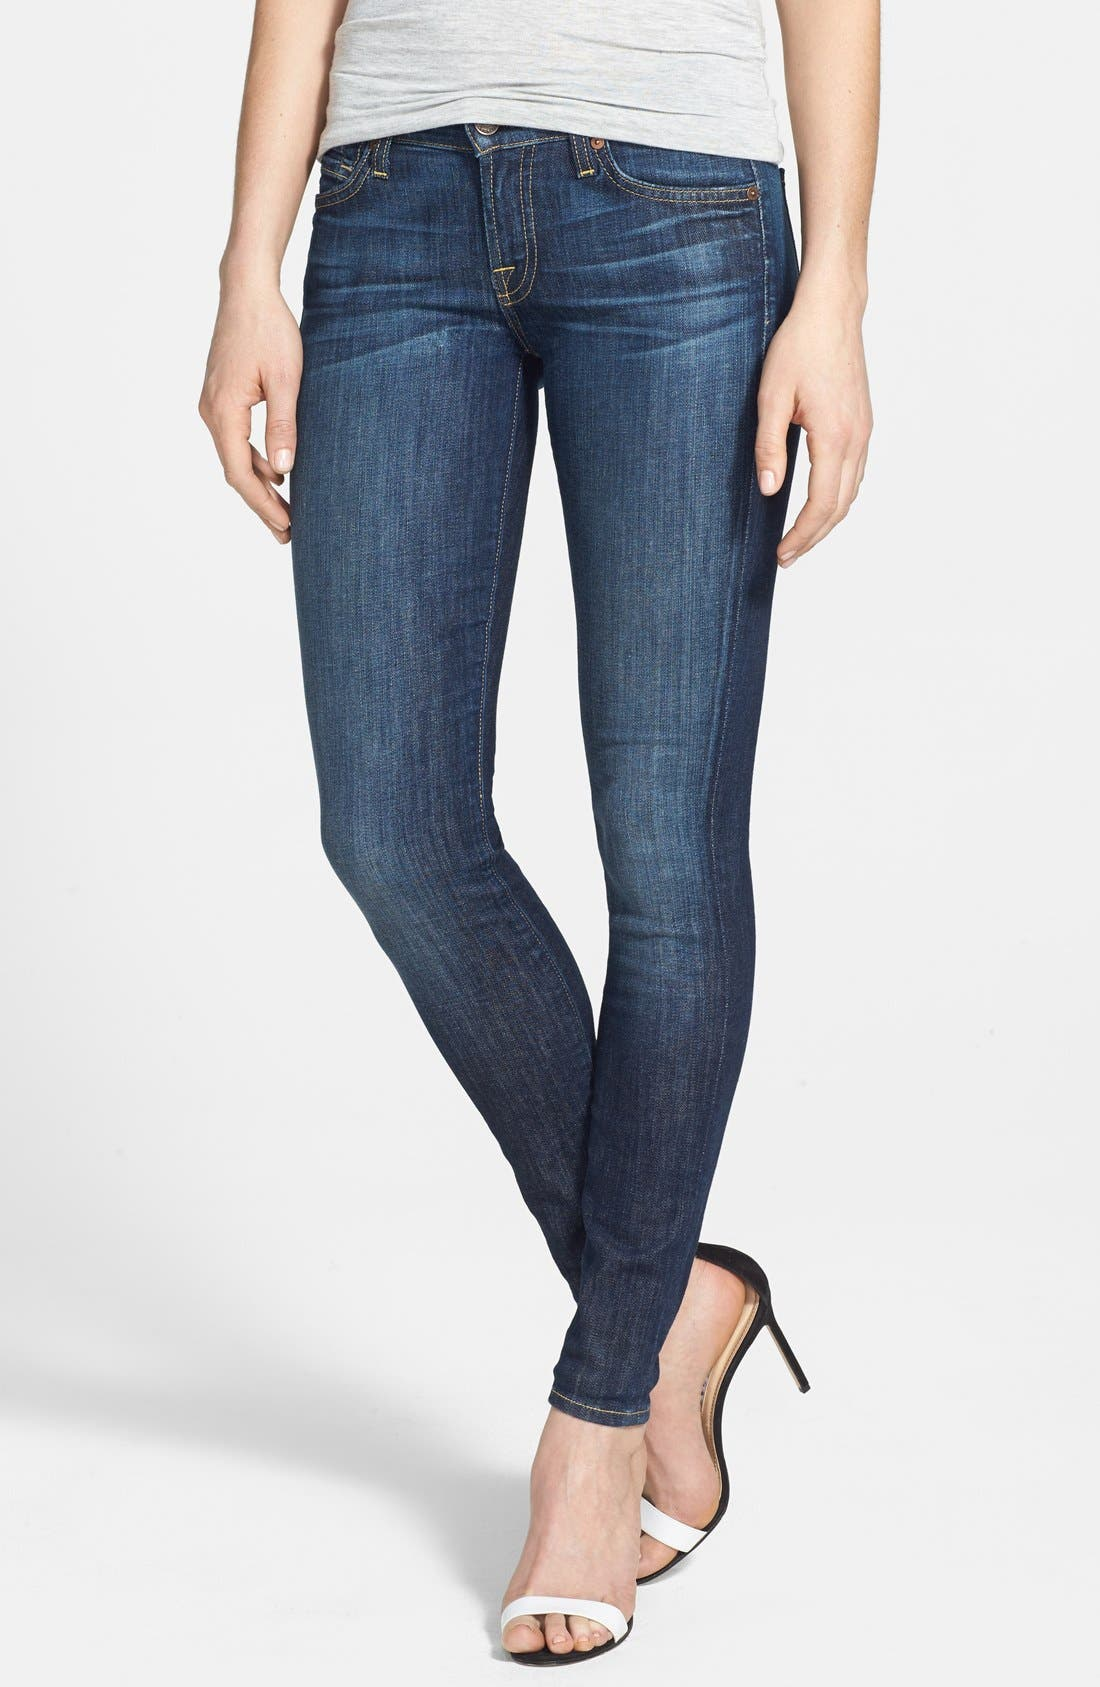 Main Image - 7 For All Mankind® 'The Skinny' Mid Rise Skinny Jeans (Nouveau New York Dark)